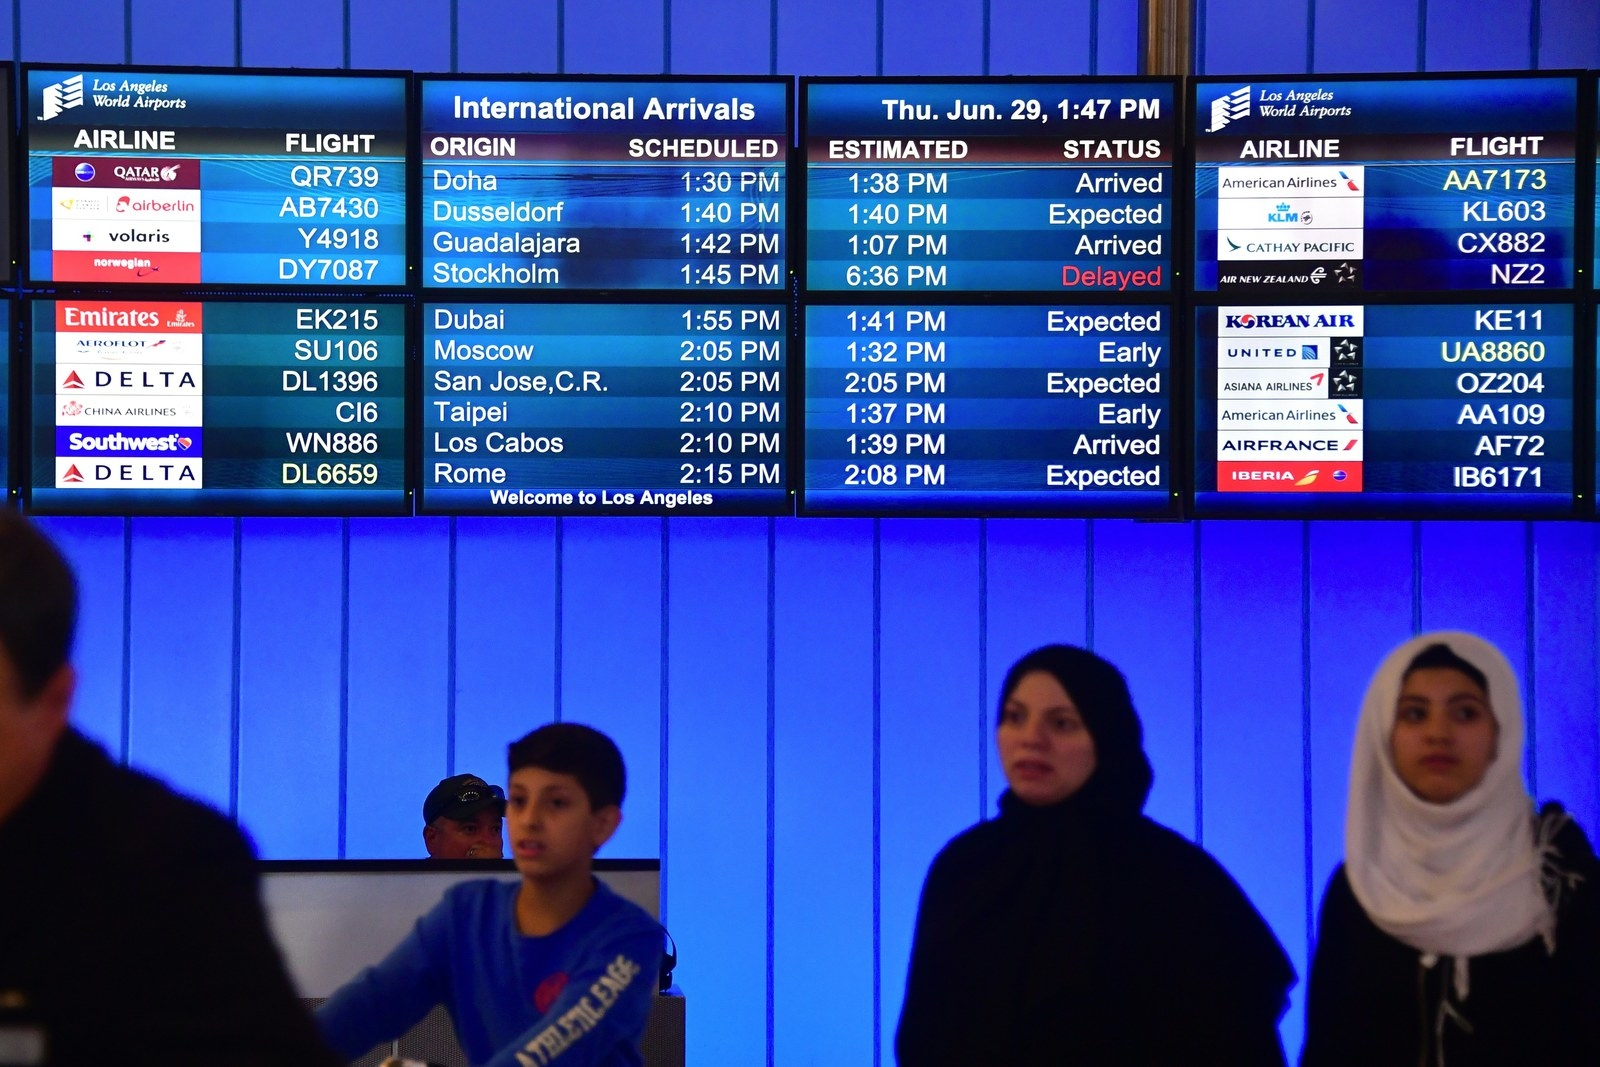 Travellers from the Middle East exit the International Arrivals section at Los Angeles International Airport